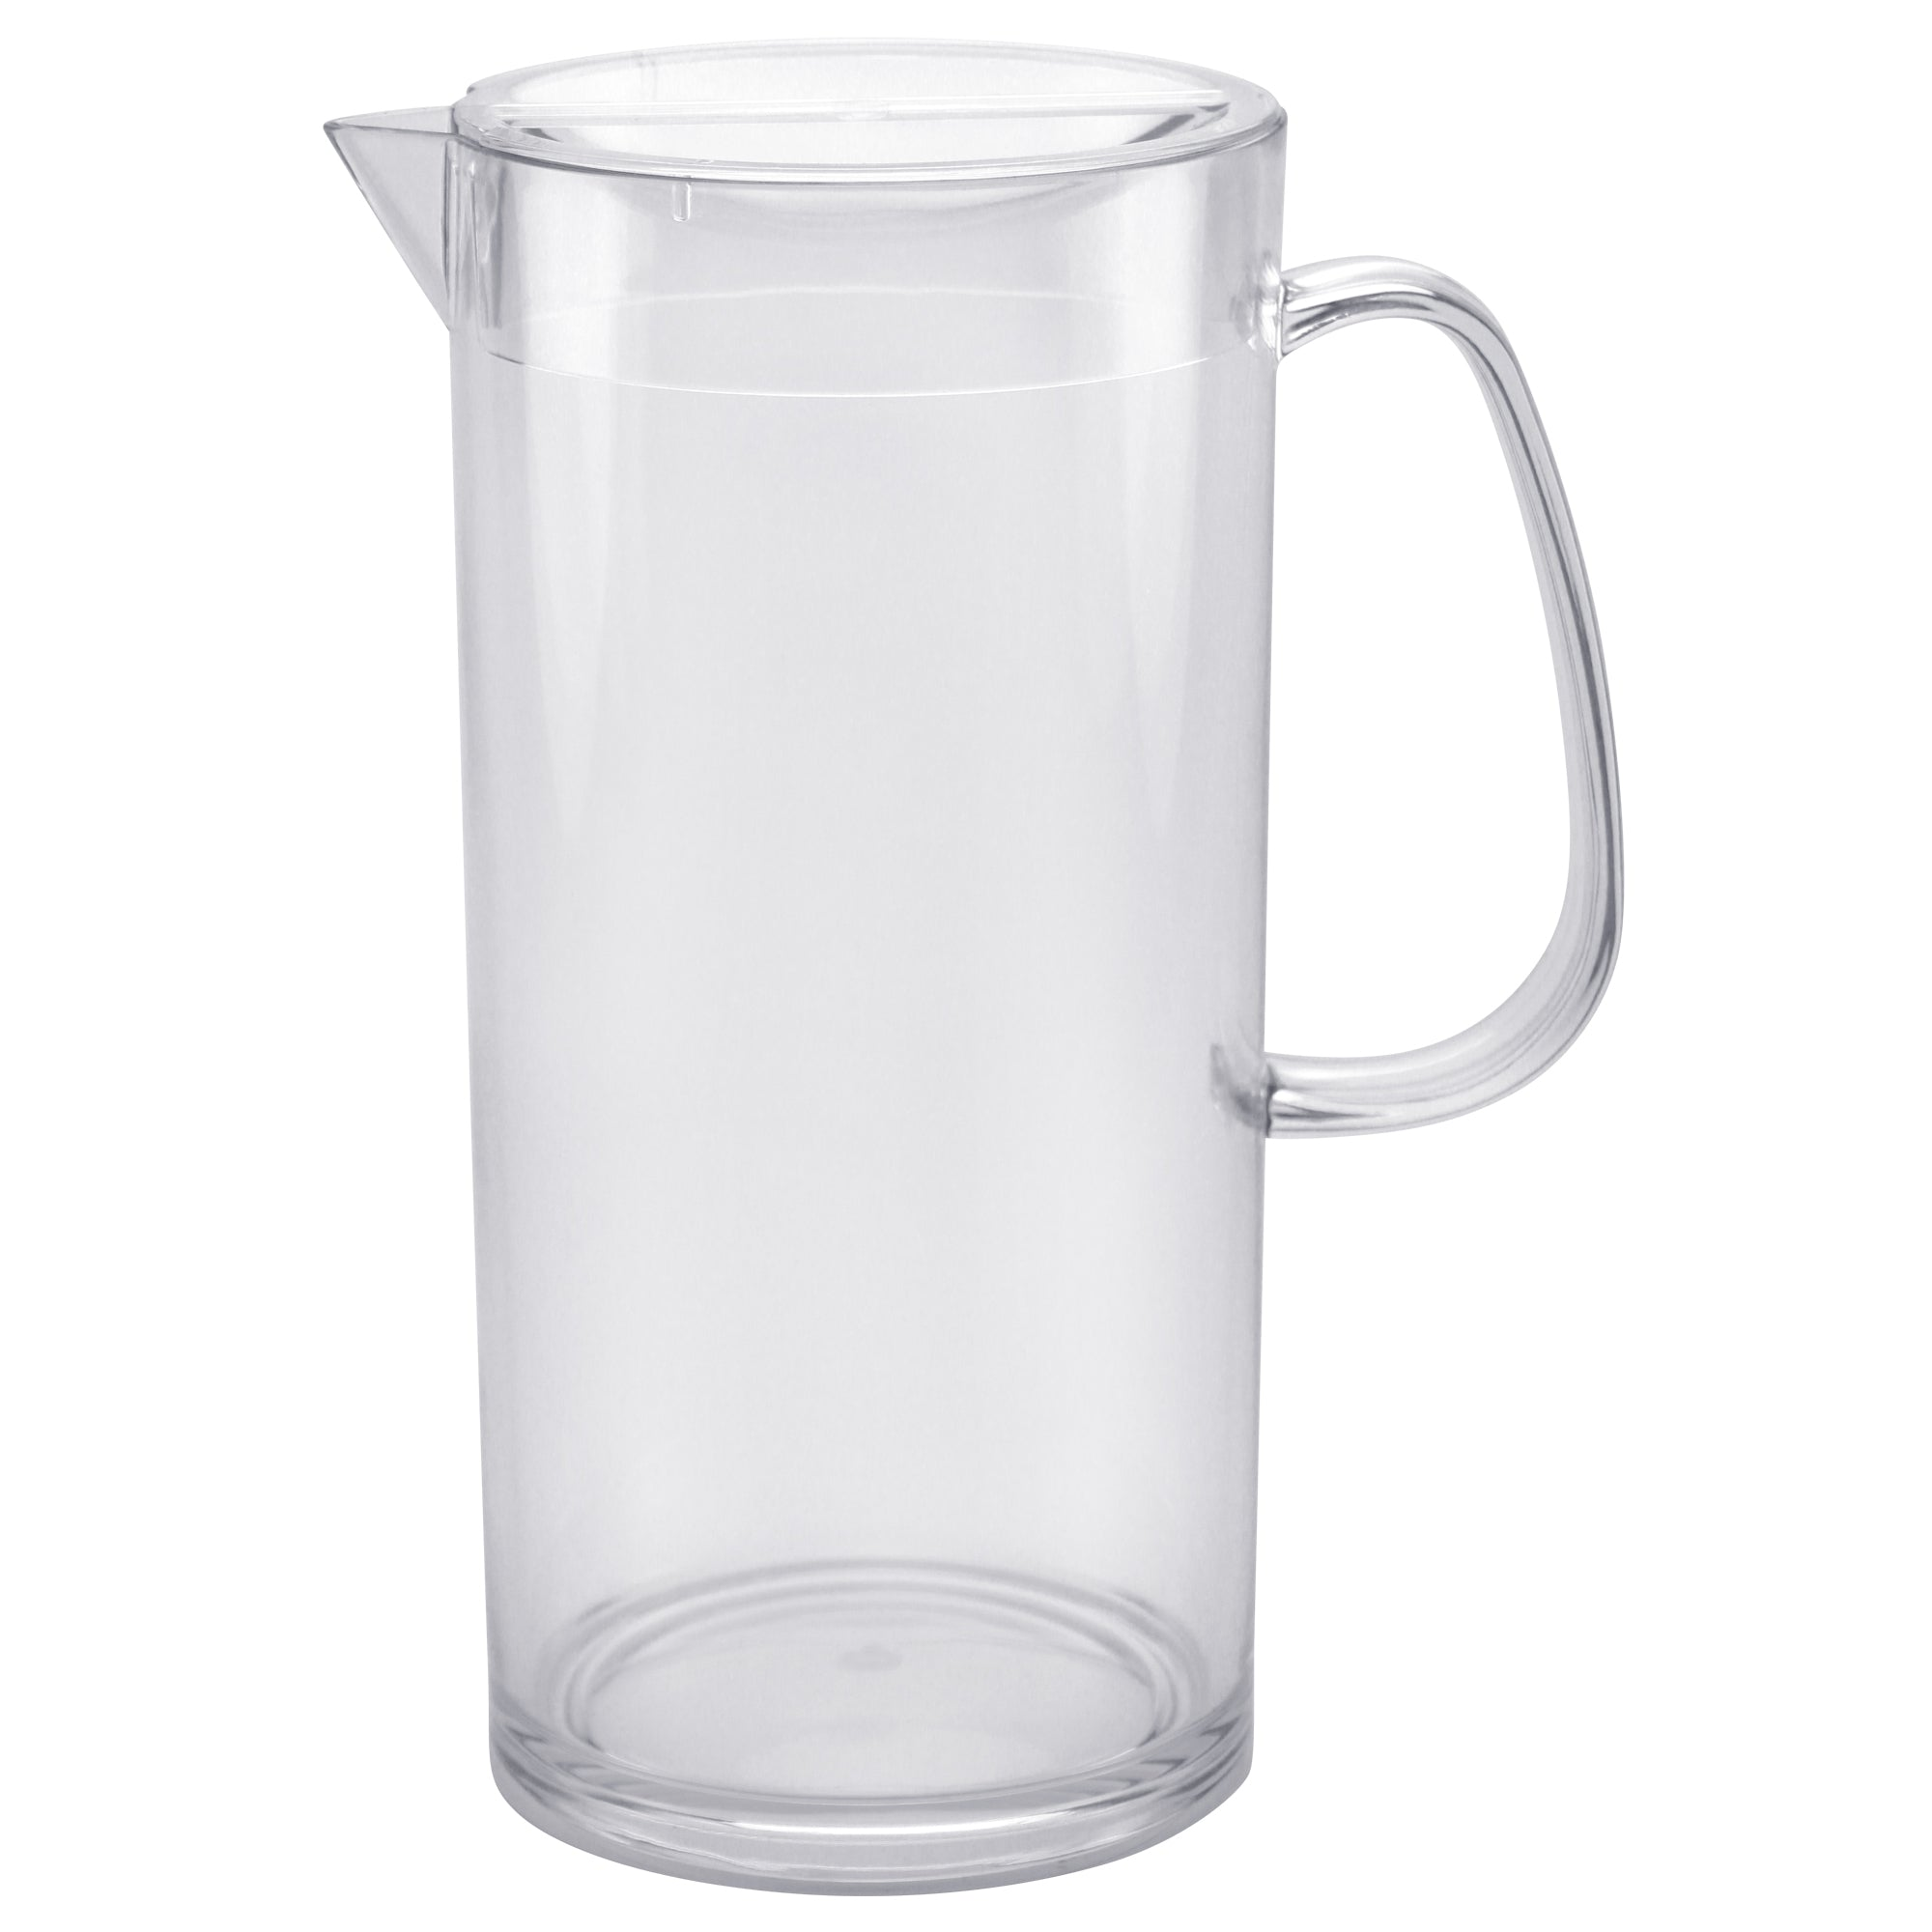 Clear Acrylic 98 oz. Pitcher With Lid